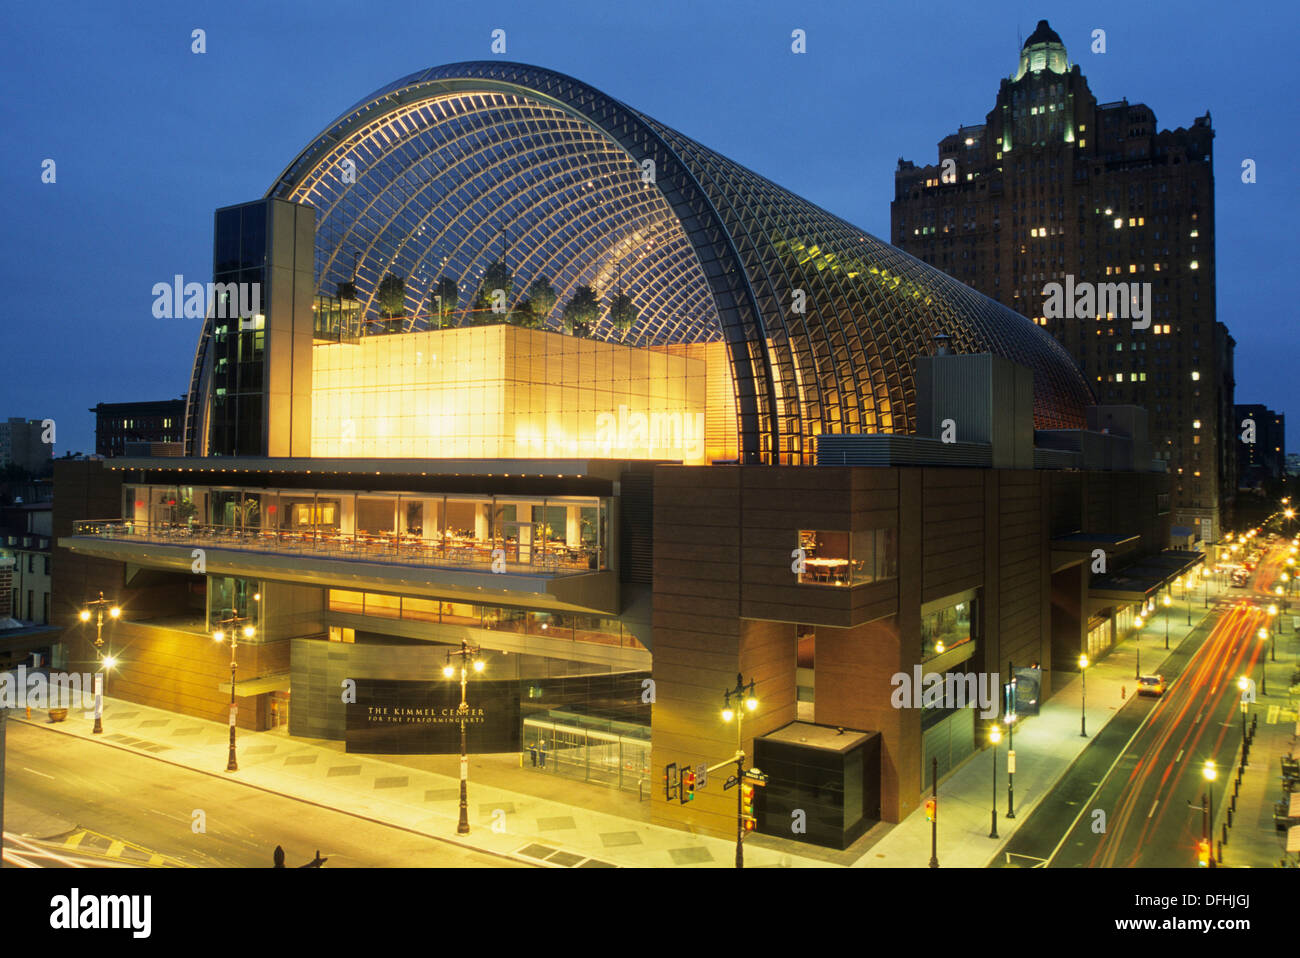 The Kimmel Center for the Performing Arts is a large performing arts venue located on Broad Street, architect:Rafael Vinoly, - Stock Image